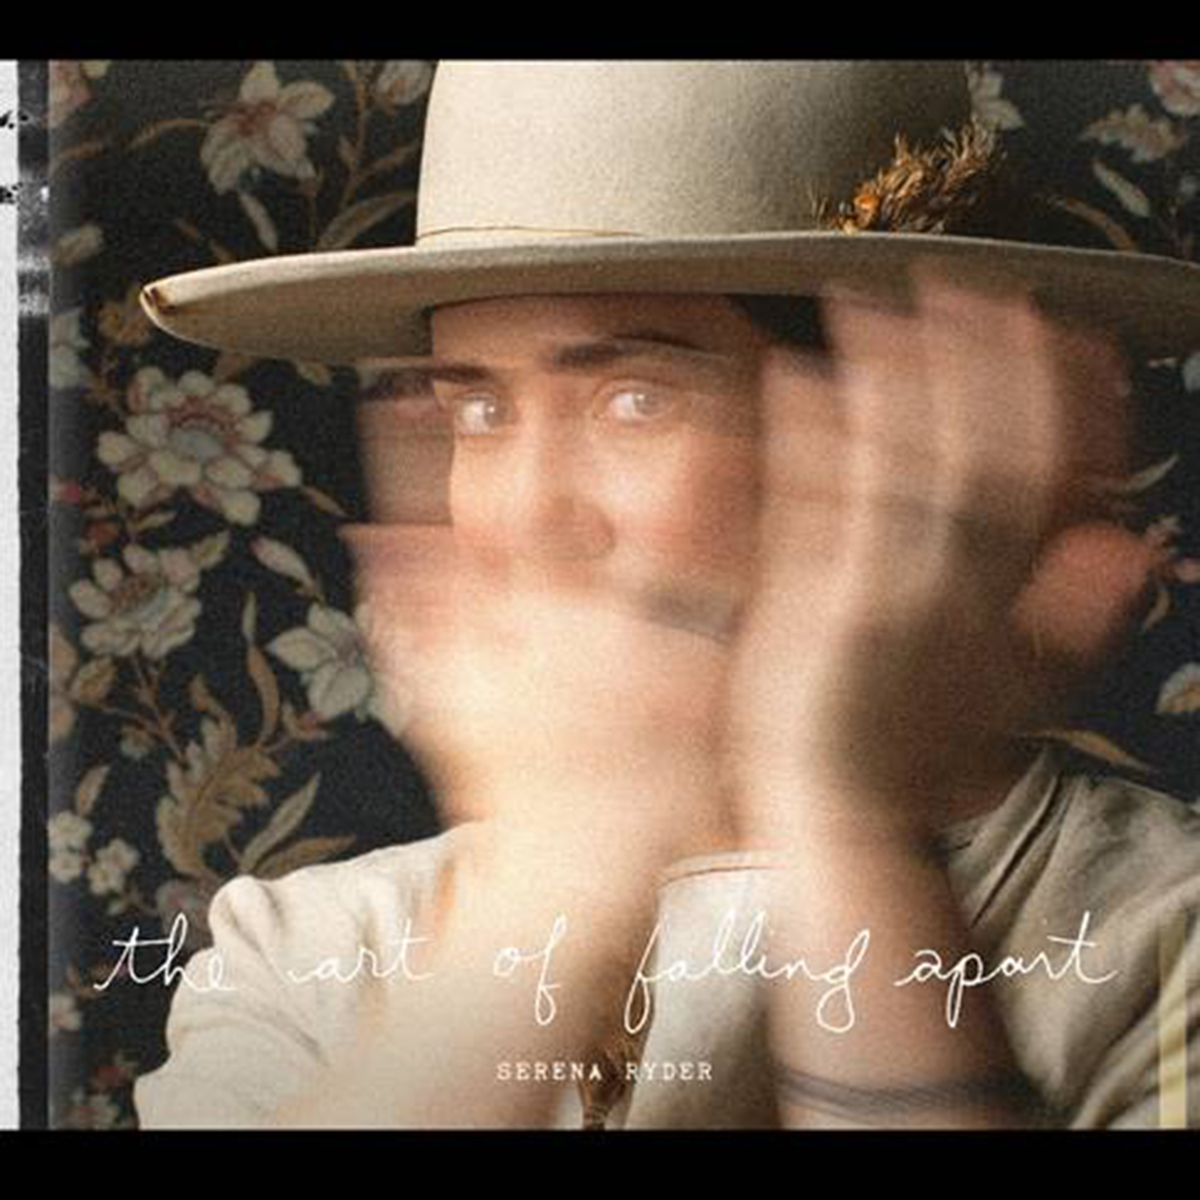 Serena Ryder Releases Anticipated Album The Art Of Falling Apart